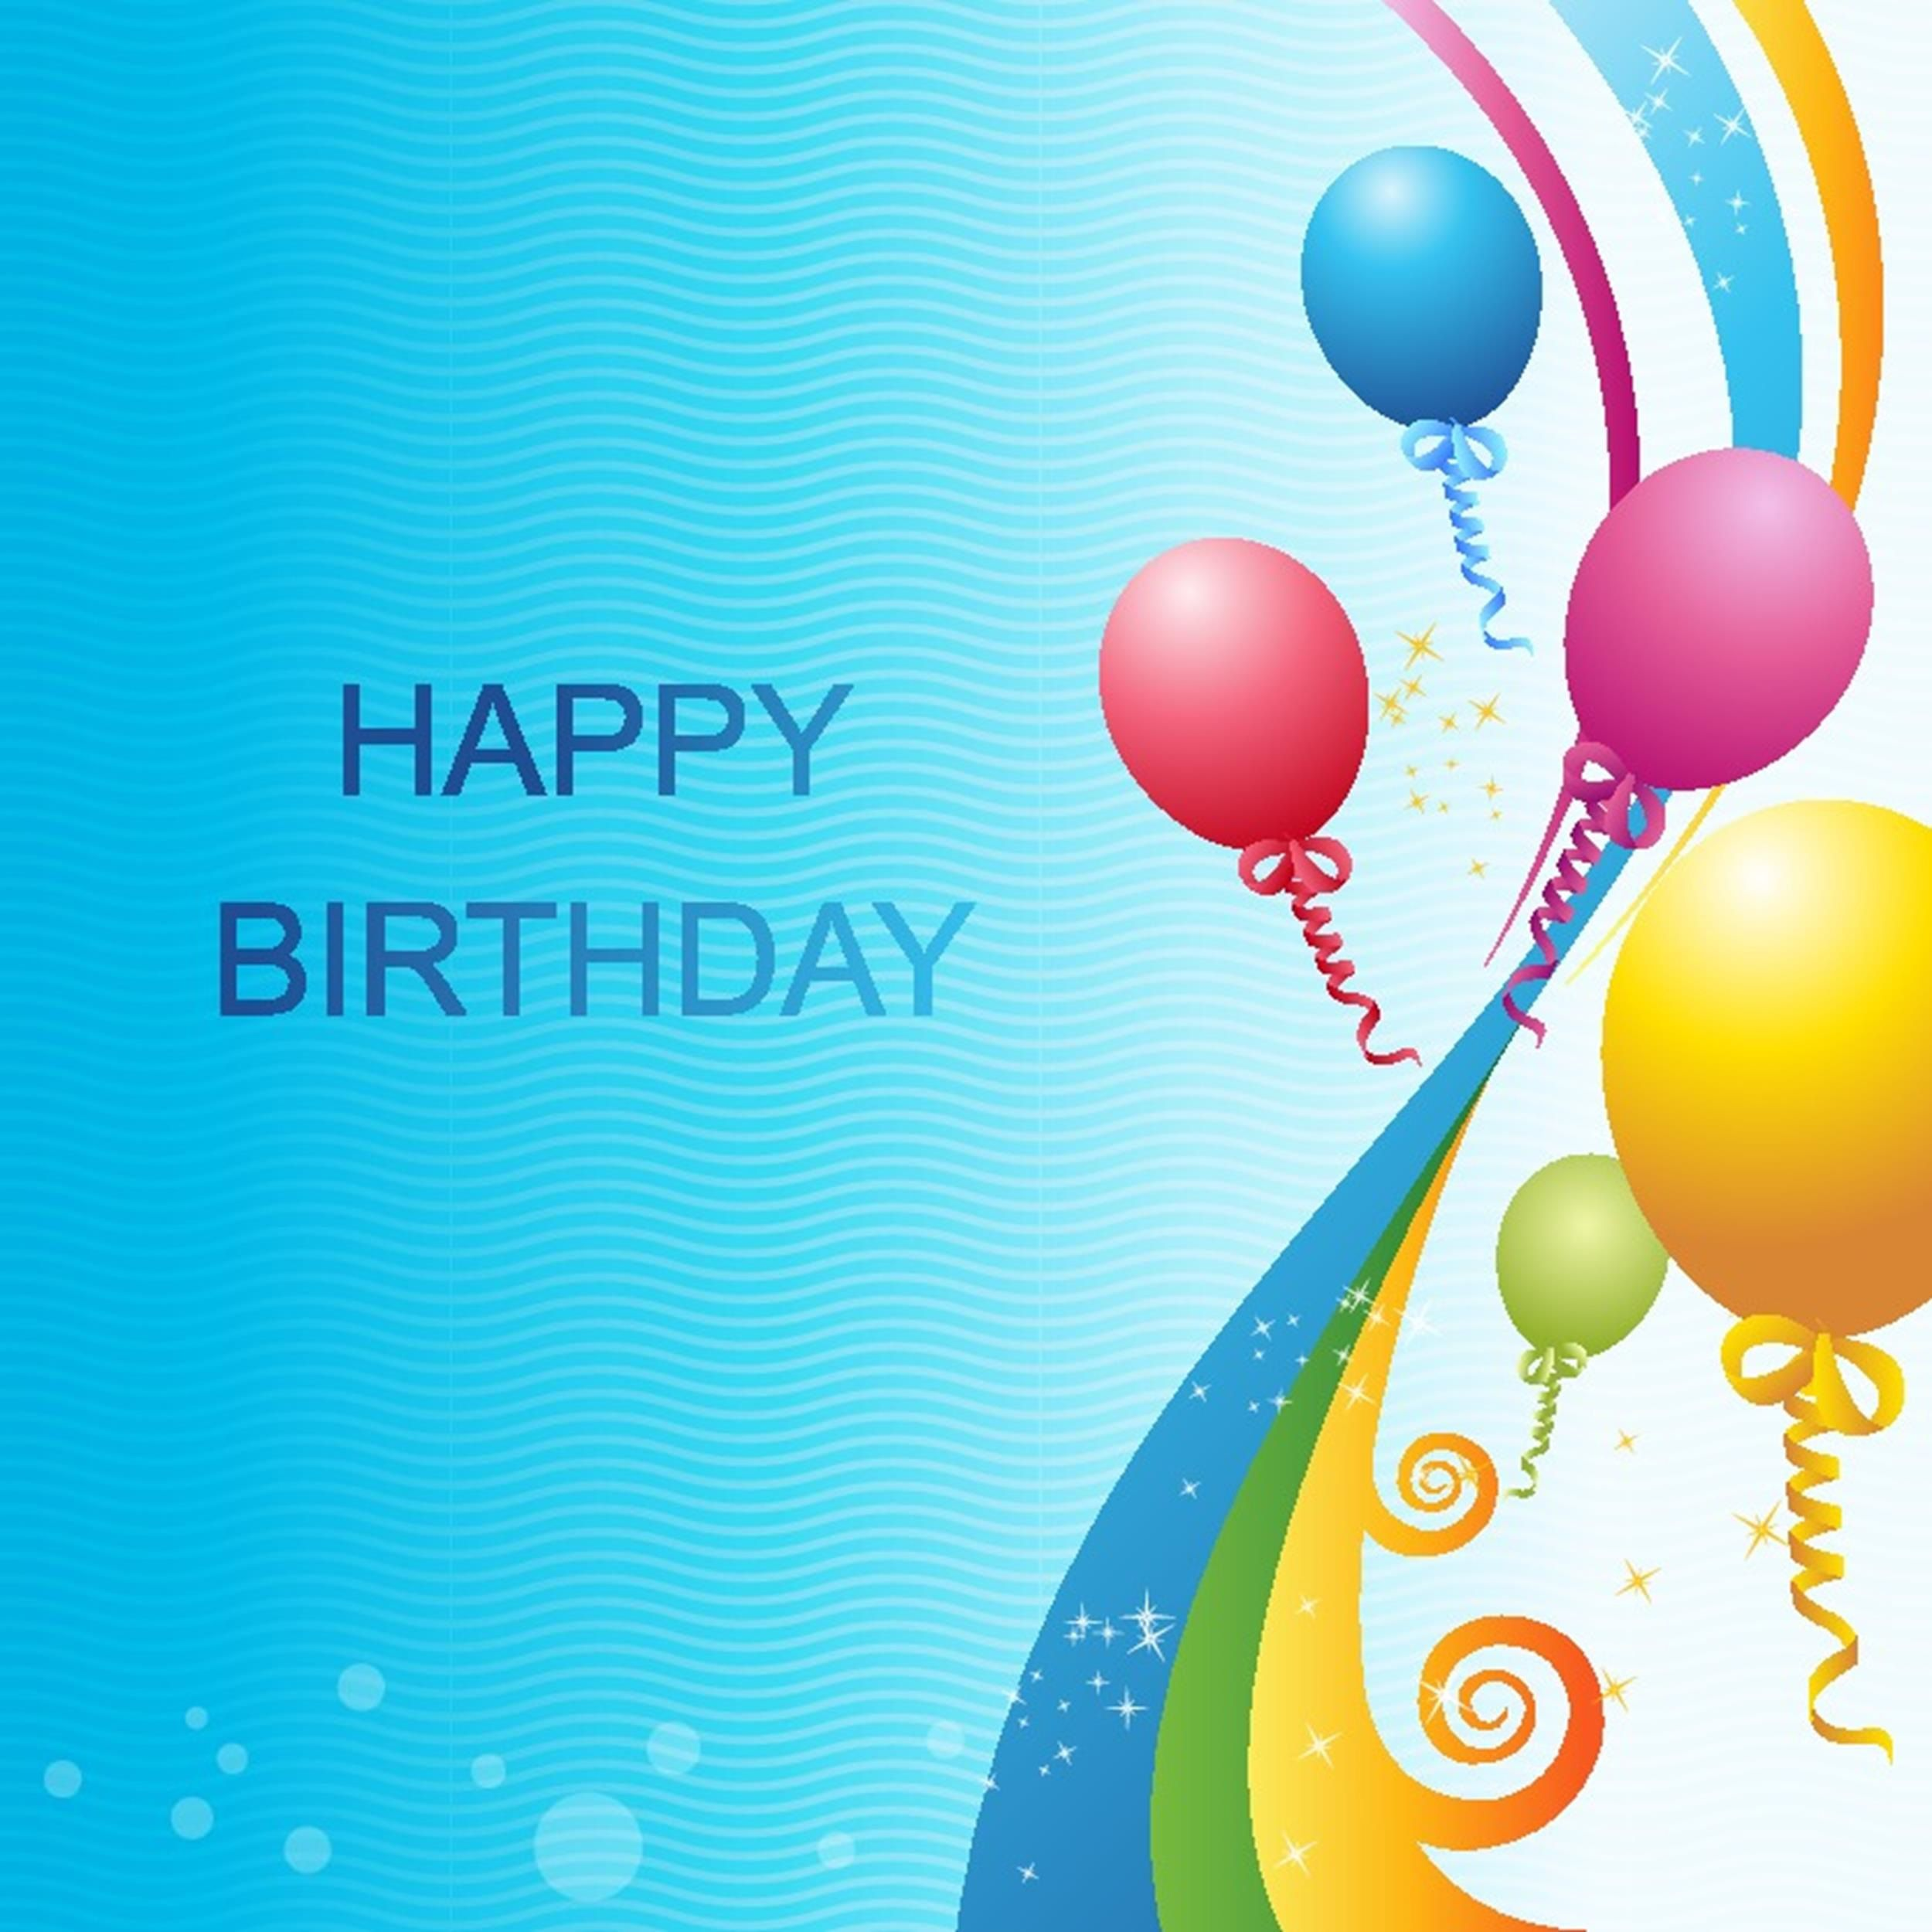 008 Simple Happy Birthday Card Template For Word Design Full